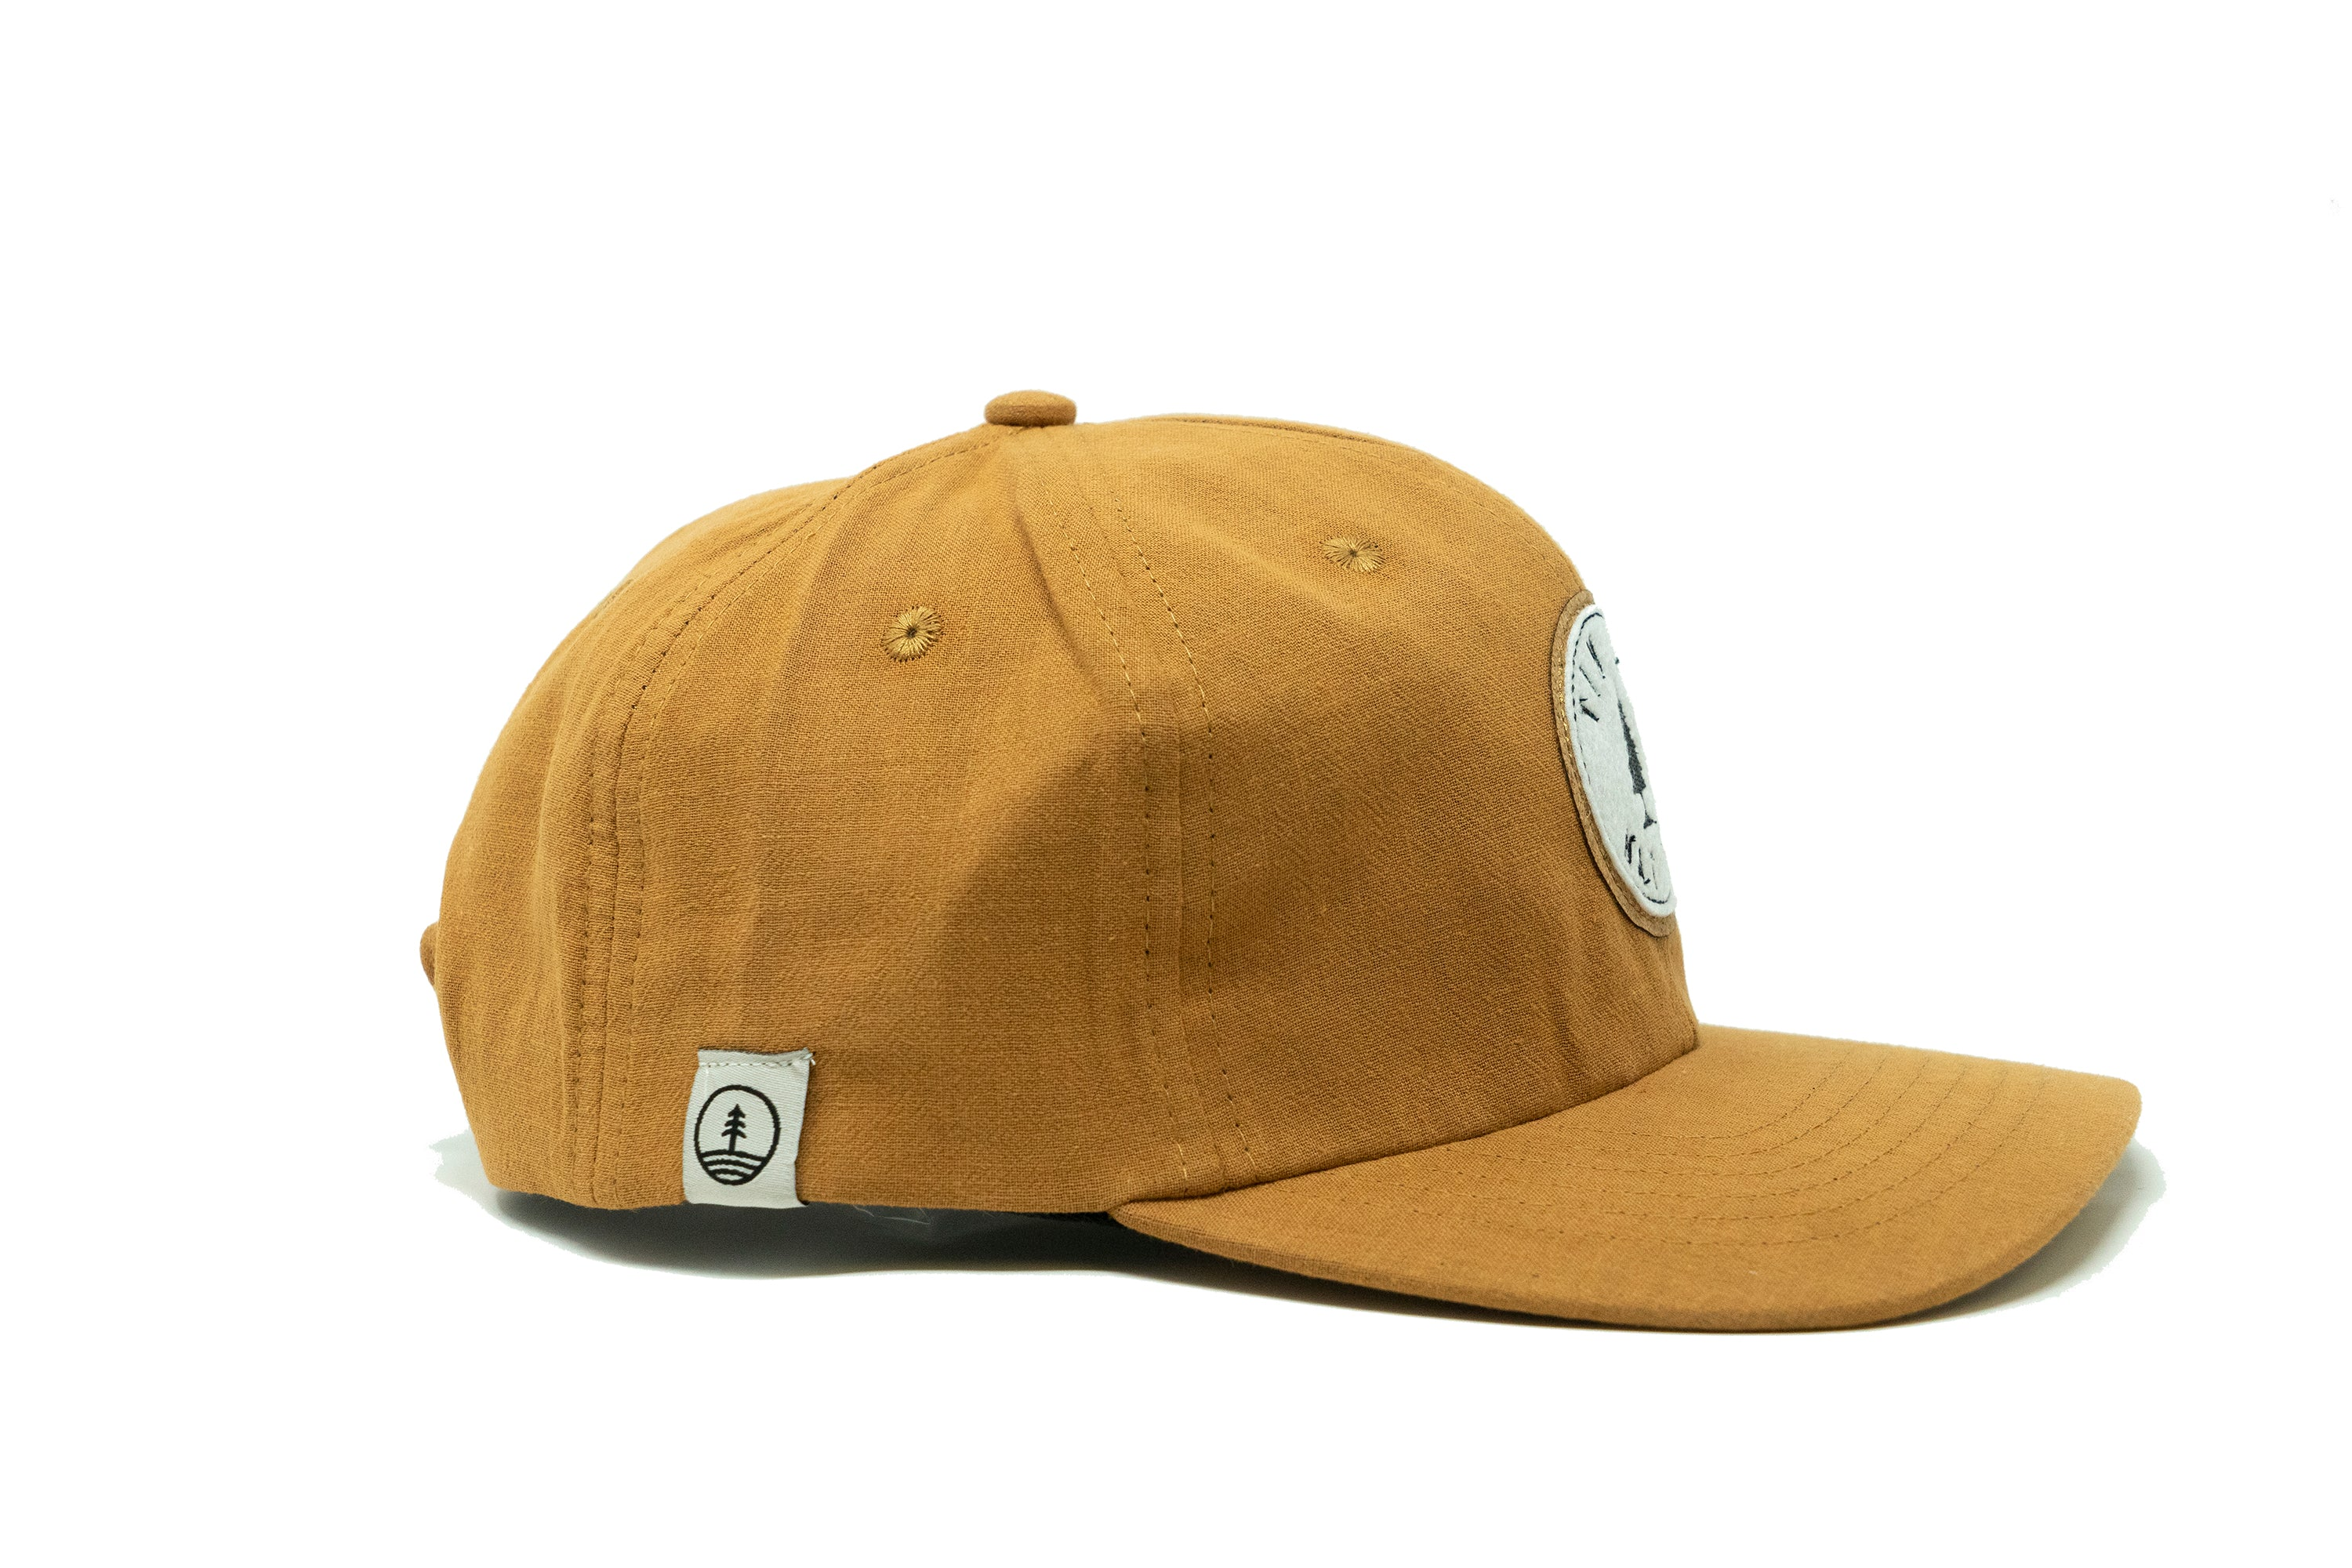 The Sand Easy-Goer Hat